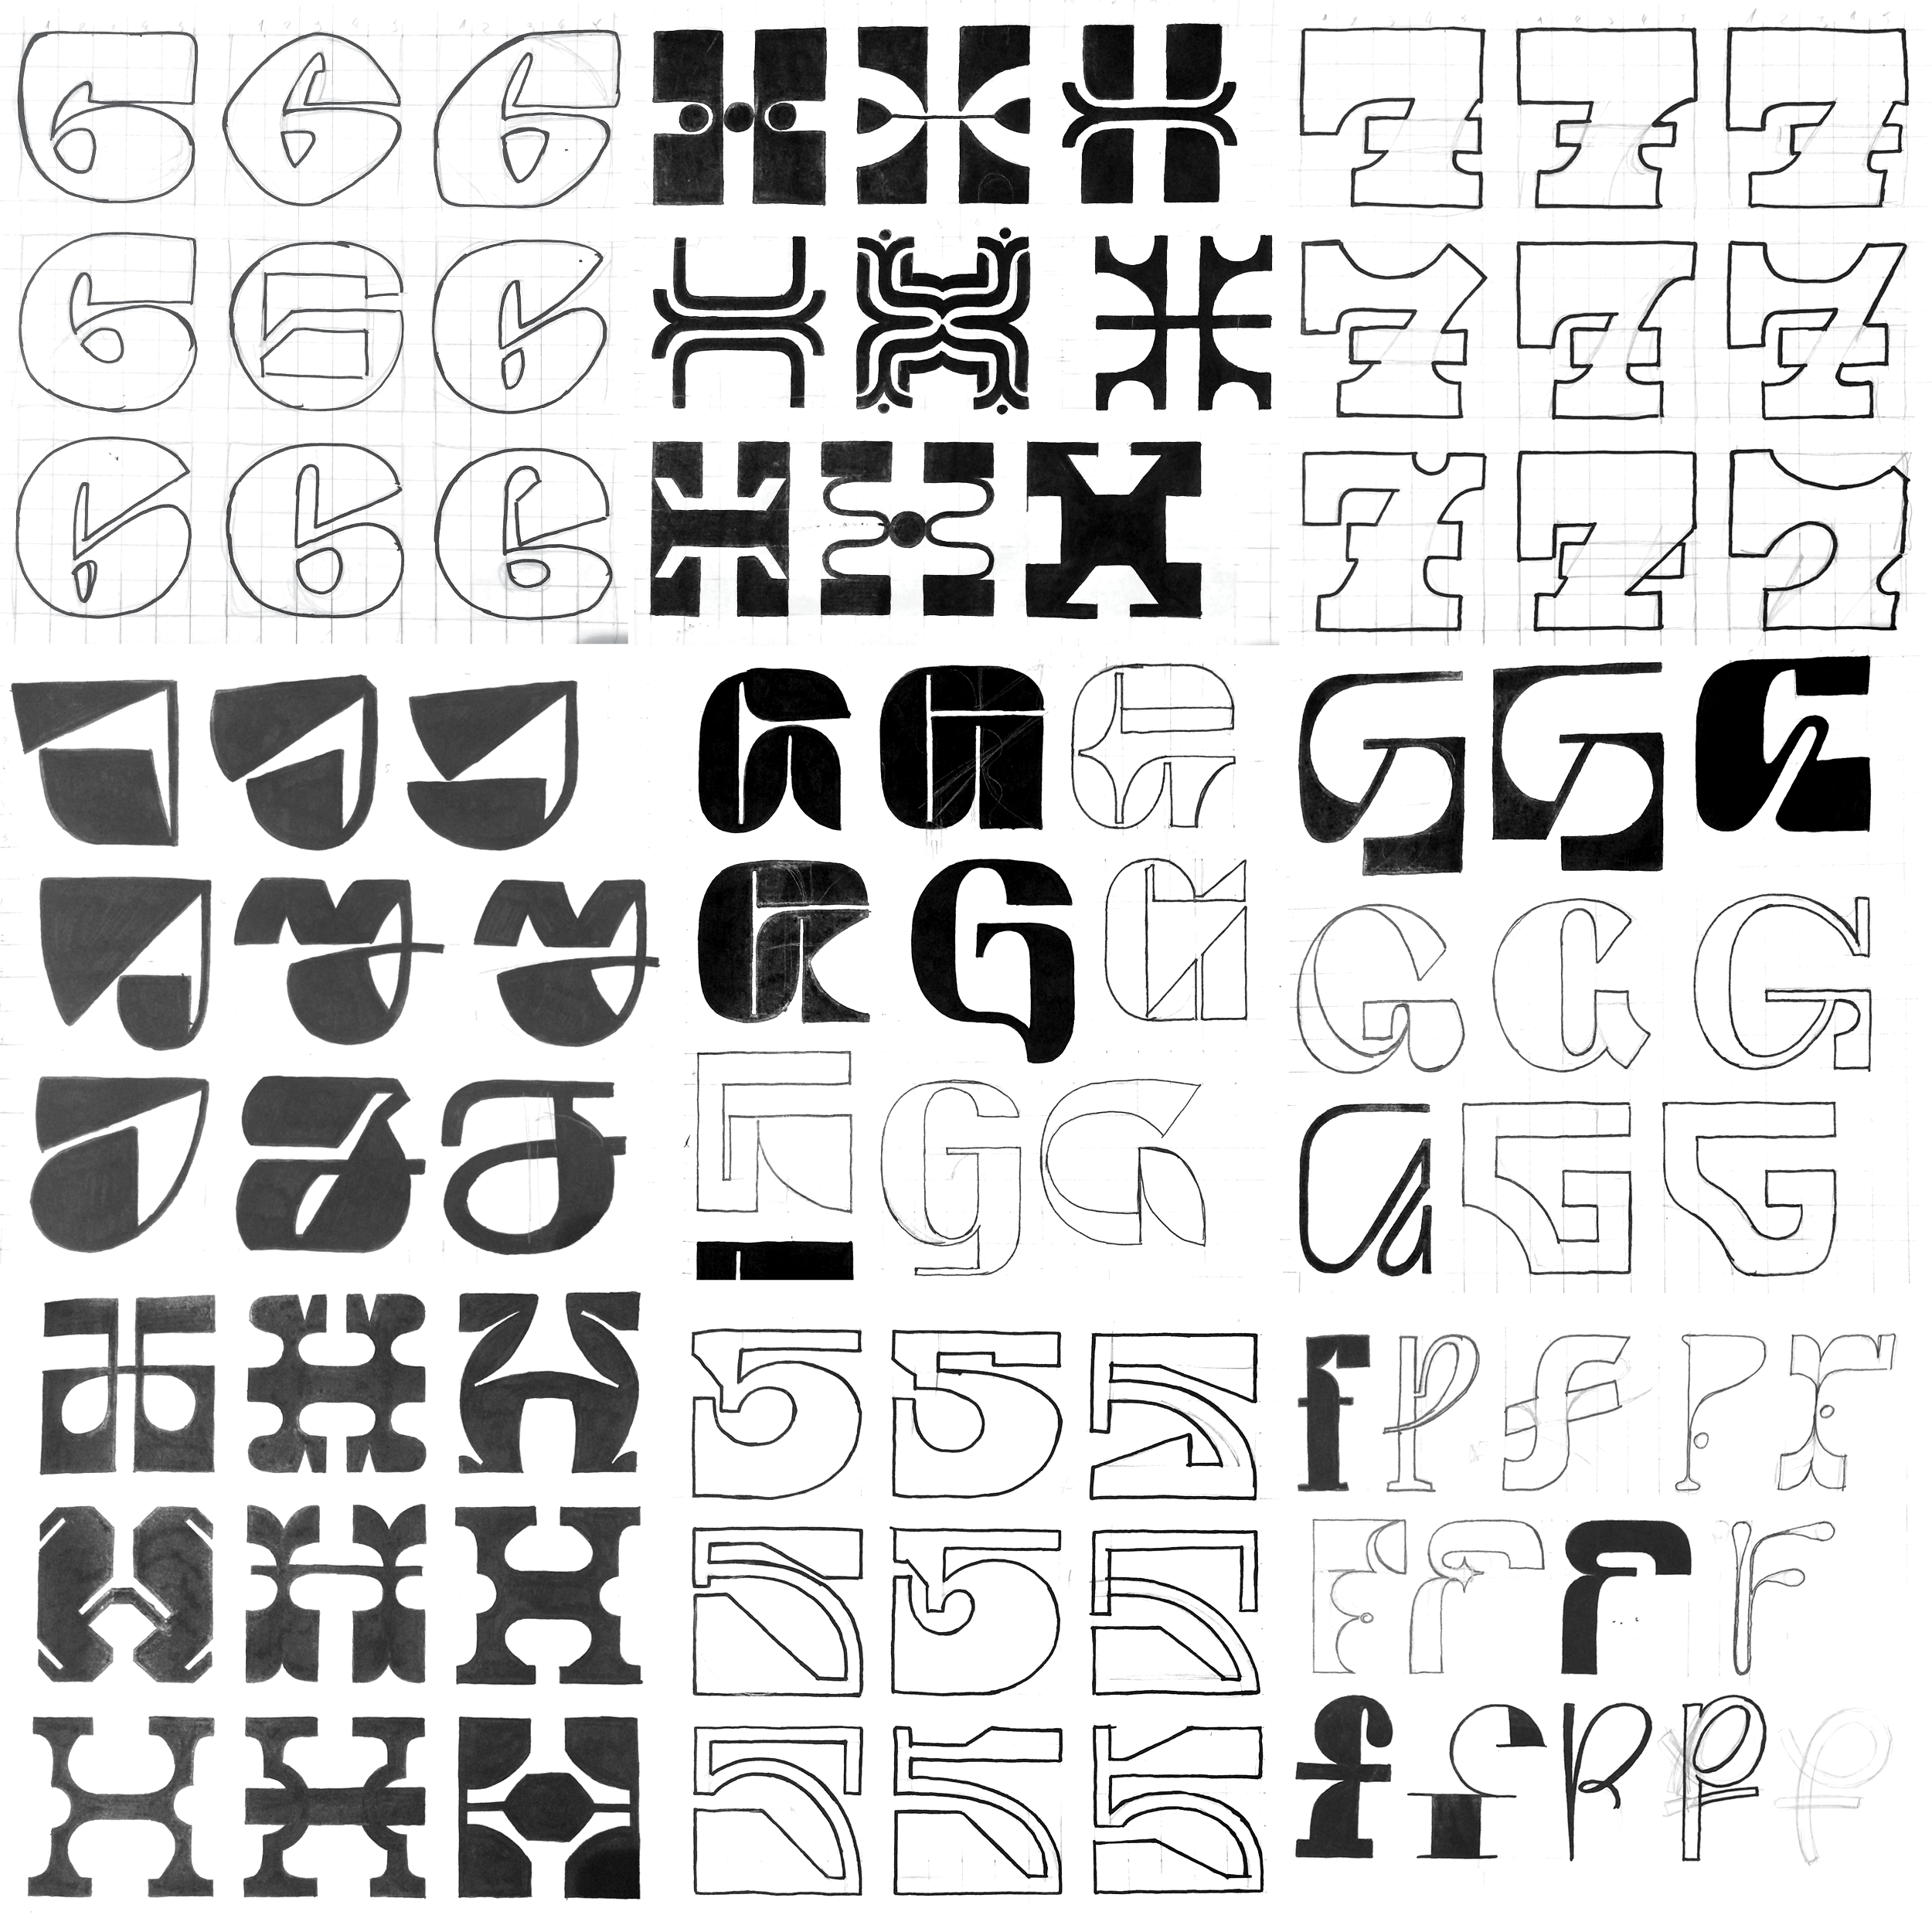 36 days of type sketches